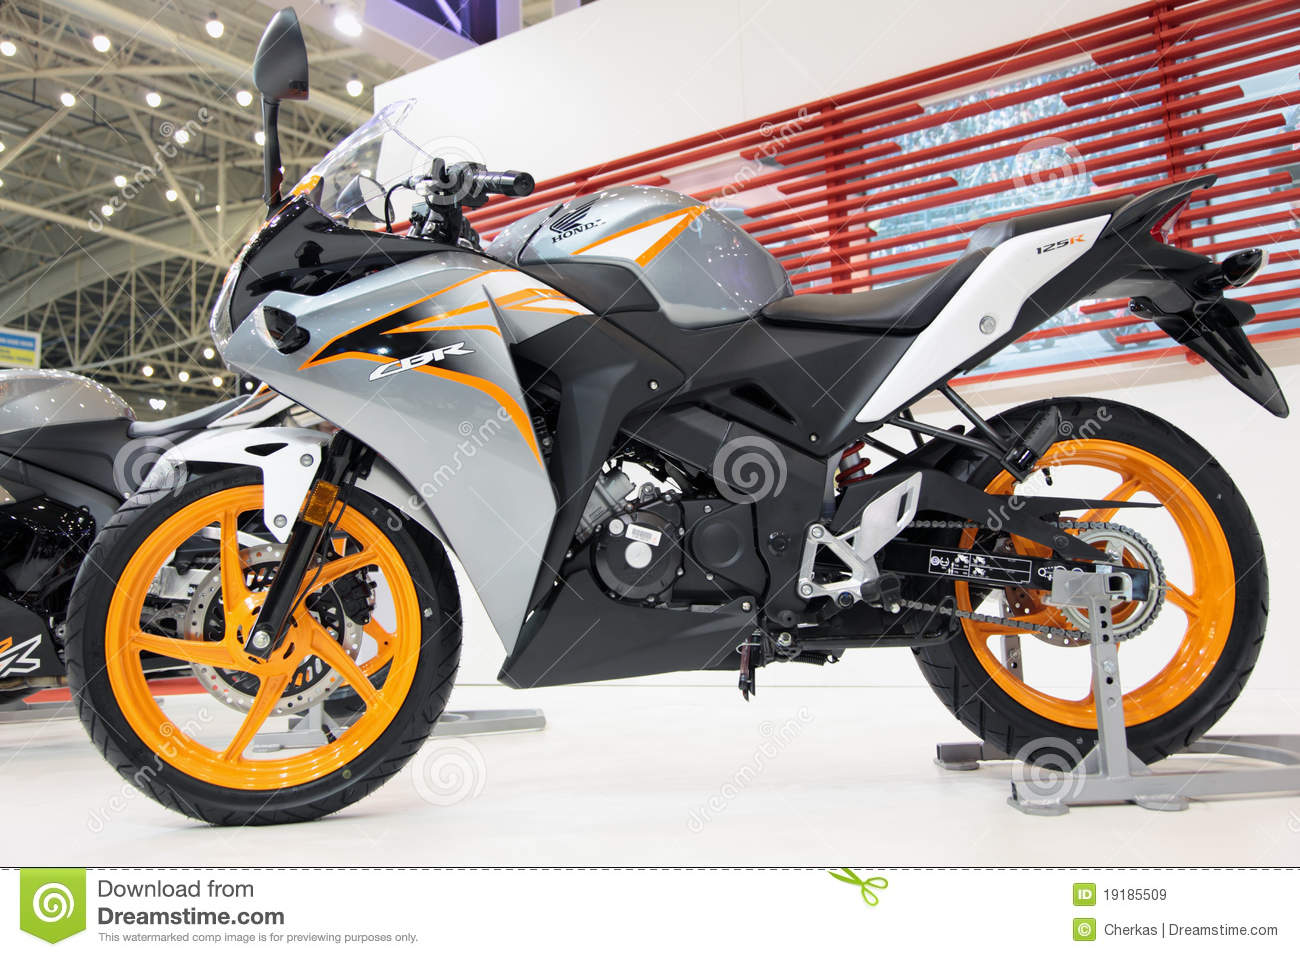 ... Exhibition, Motobike 2011, on April 7, 2011 in Kiev, Ukraine